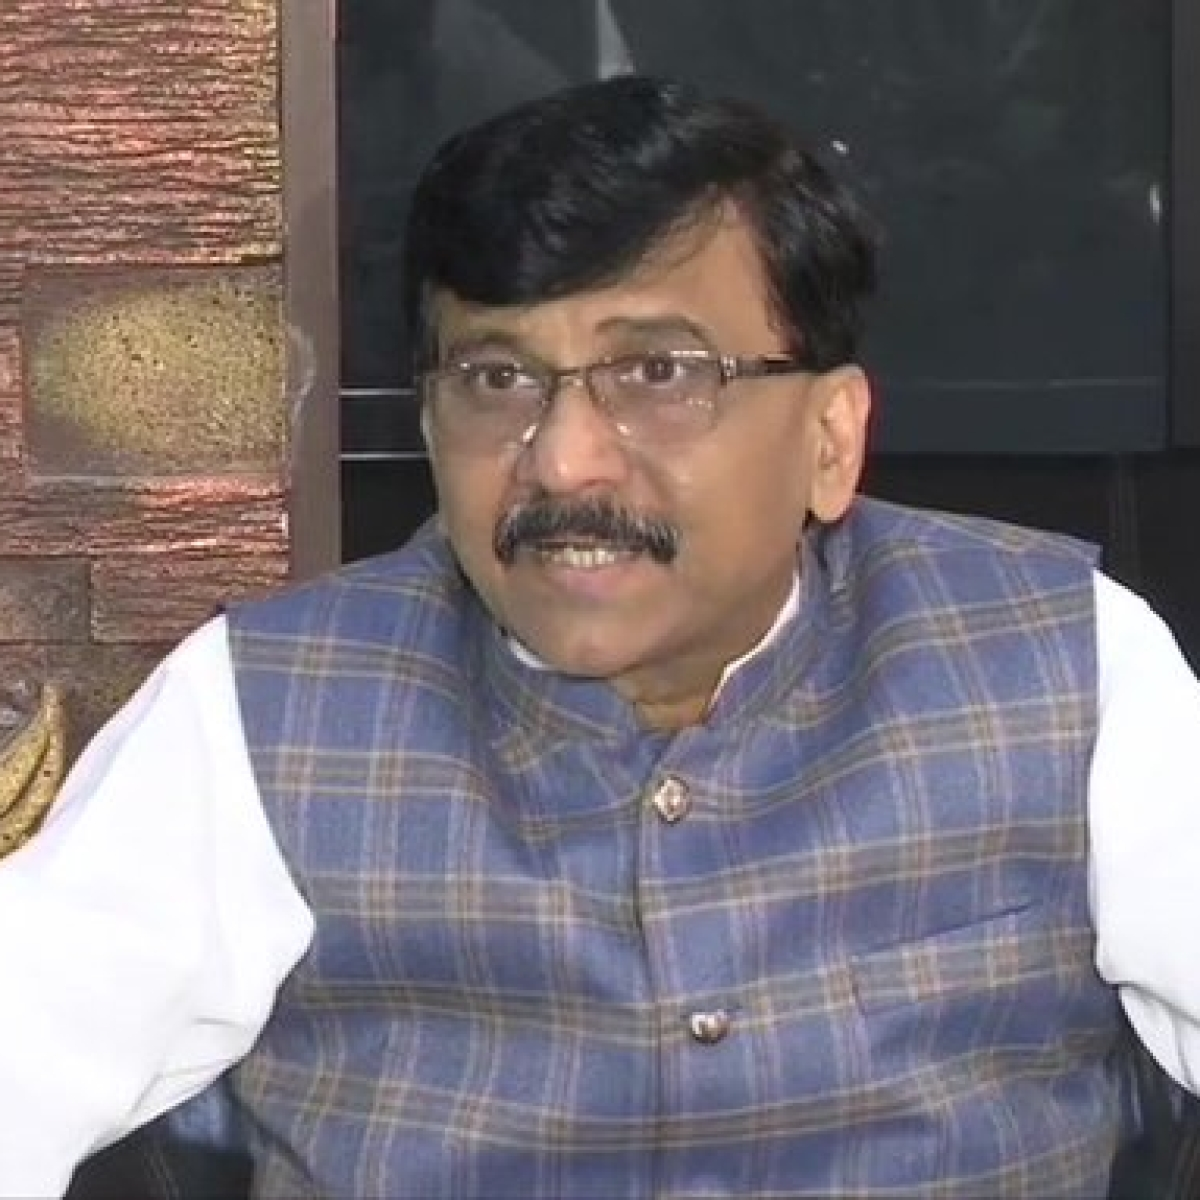 'Enough is enough': Sanjay Raut warns BJP leaders of legal action for linking his family's name to PMC-HDIL scam